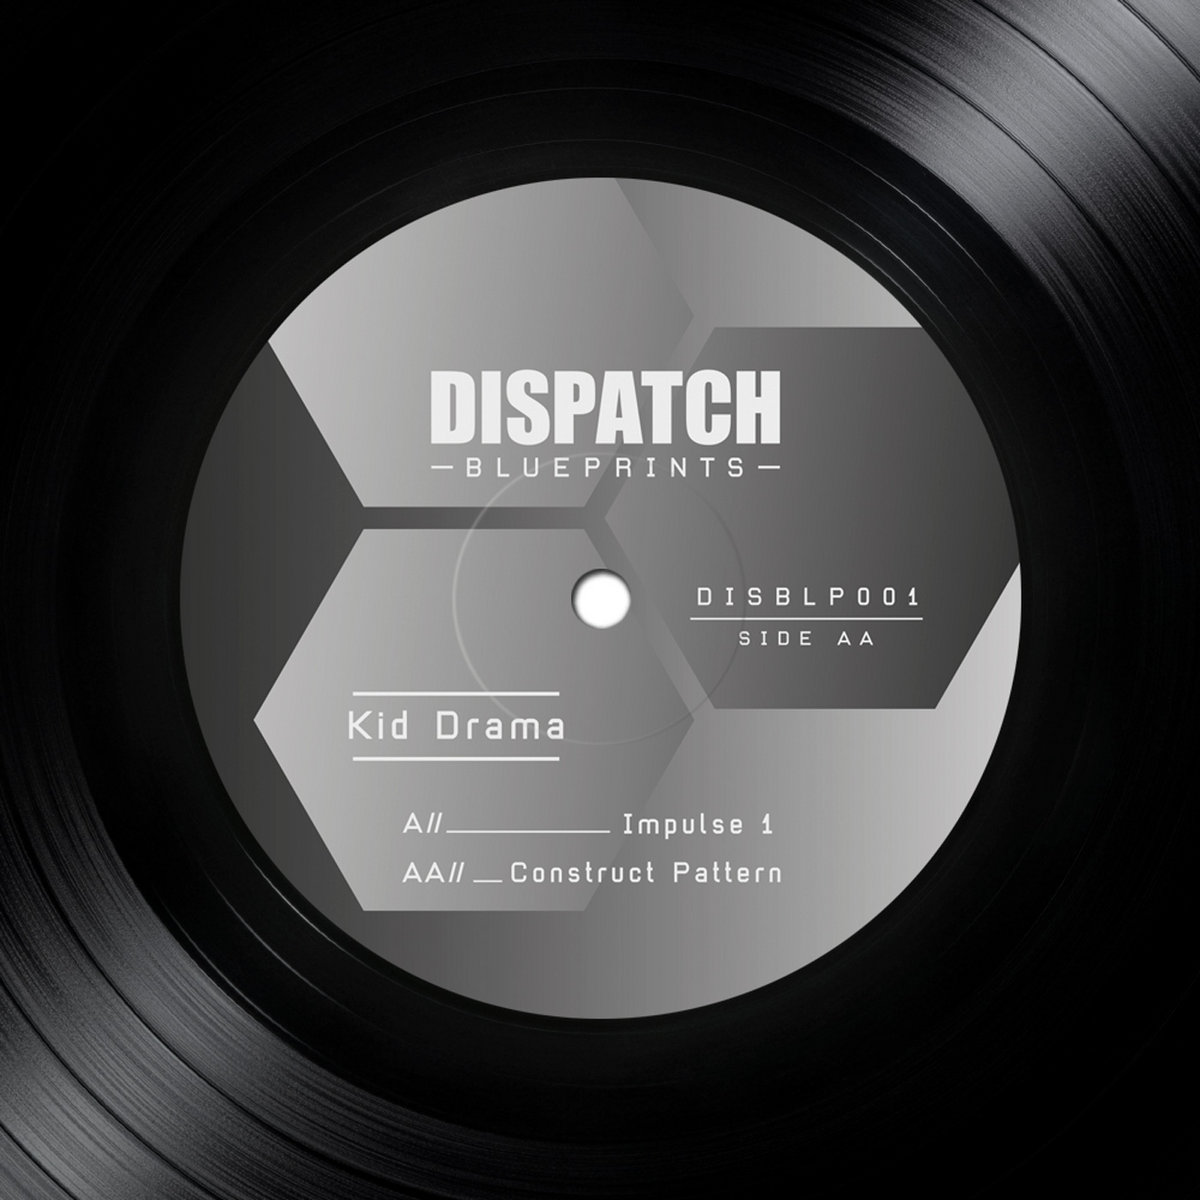 Dispatch blueprints 001 kid drama dispatch recordings introducing a new label with a direction we proudly present dispatch blueprints with the debut release coming from one of our favourite artists malvernweather Gallery